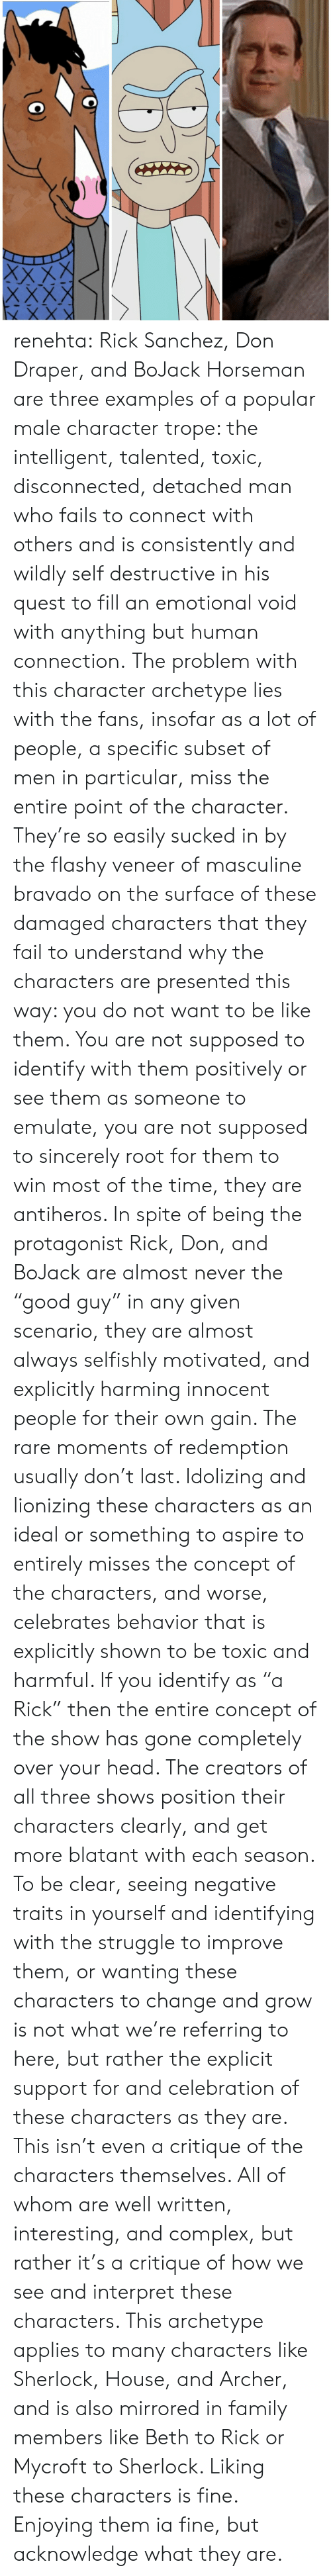 """bravado: renehta:  Rick Sanchez, Don Draper,  and BoJack Horseman are three examples of a popular male character trope: the intelligent, talented, toxic, disconnected, detached man who fails to connect with others and is consistently and wildly self destructive in his quest to fill an emotional void with anything but human connection.  The problem with this character archetype lies with the fans, insofar as a lot of people, a specific subset of men in particular, miss the entire point of the character.   They're so easily sucked in by the flashy veneer of masculine bravado on the surface of these damaged characters that they fail to understand why the characters are presented this way: you do not want to be like them.  You are not supposed to identify with them positively or see them as someone to emulate, you are not supposed to sincerely root for them to win most of the time, they are antiheros.   In spite of being the protagonist Rick, Don, and BoJack are almost never the """"good guy"""" in any given scenario, they are almost always selfishly motivated, and explicitly harming innocent people for their own gain. The rare moments of redemption usually don't last.   Idolizing and lionizing these characters as an ideal or something to aspire to entirely misses the concept of the characters, and worse, celebrates behavior that is explicitly shown to be toxic and harmful.    If you identify as """"a Rick"""" then the entire concept of the show has gone completely over your head. The creators of all three shows position their characters clearly, and get more blatant with each season.  To be clear, seeing negative traits in yourself and identifying with the struggle to improve them, or wanting these characters to change and grow is not what we're referring to here, but rather the explicit support for and celebration of these characters as they are.  This isn't even a critique of the characters themselves. All of whom are well written, interesting, and complex, but rather it's a cri"""